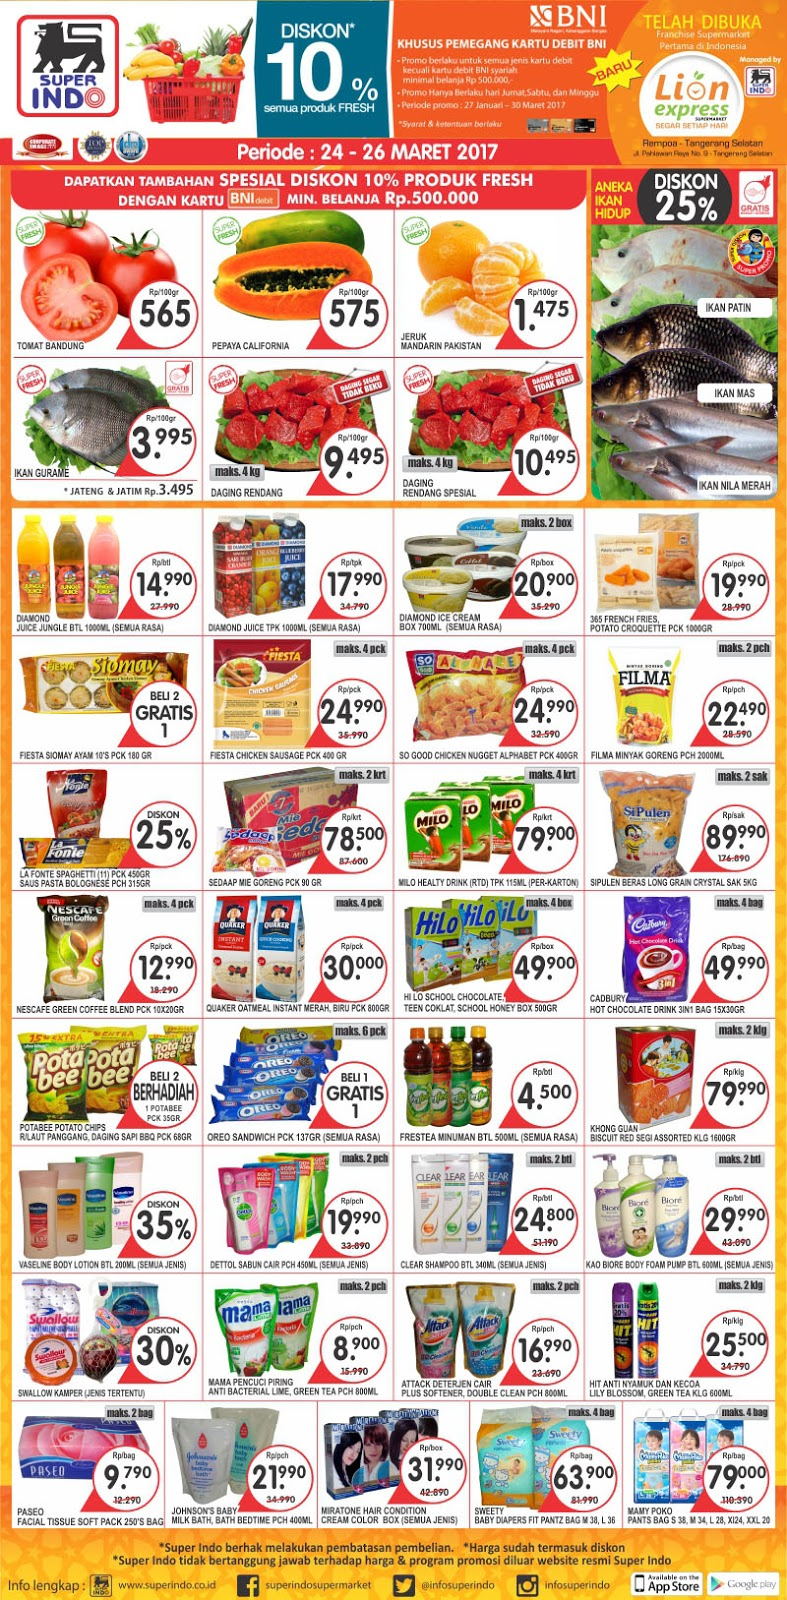 Permalink to Katalog Promo Superindo Akhir Pekan 31 Maret – 2 April 2017